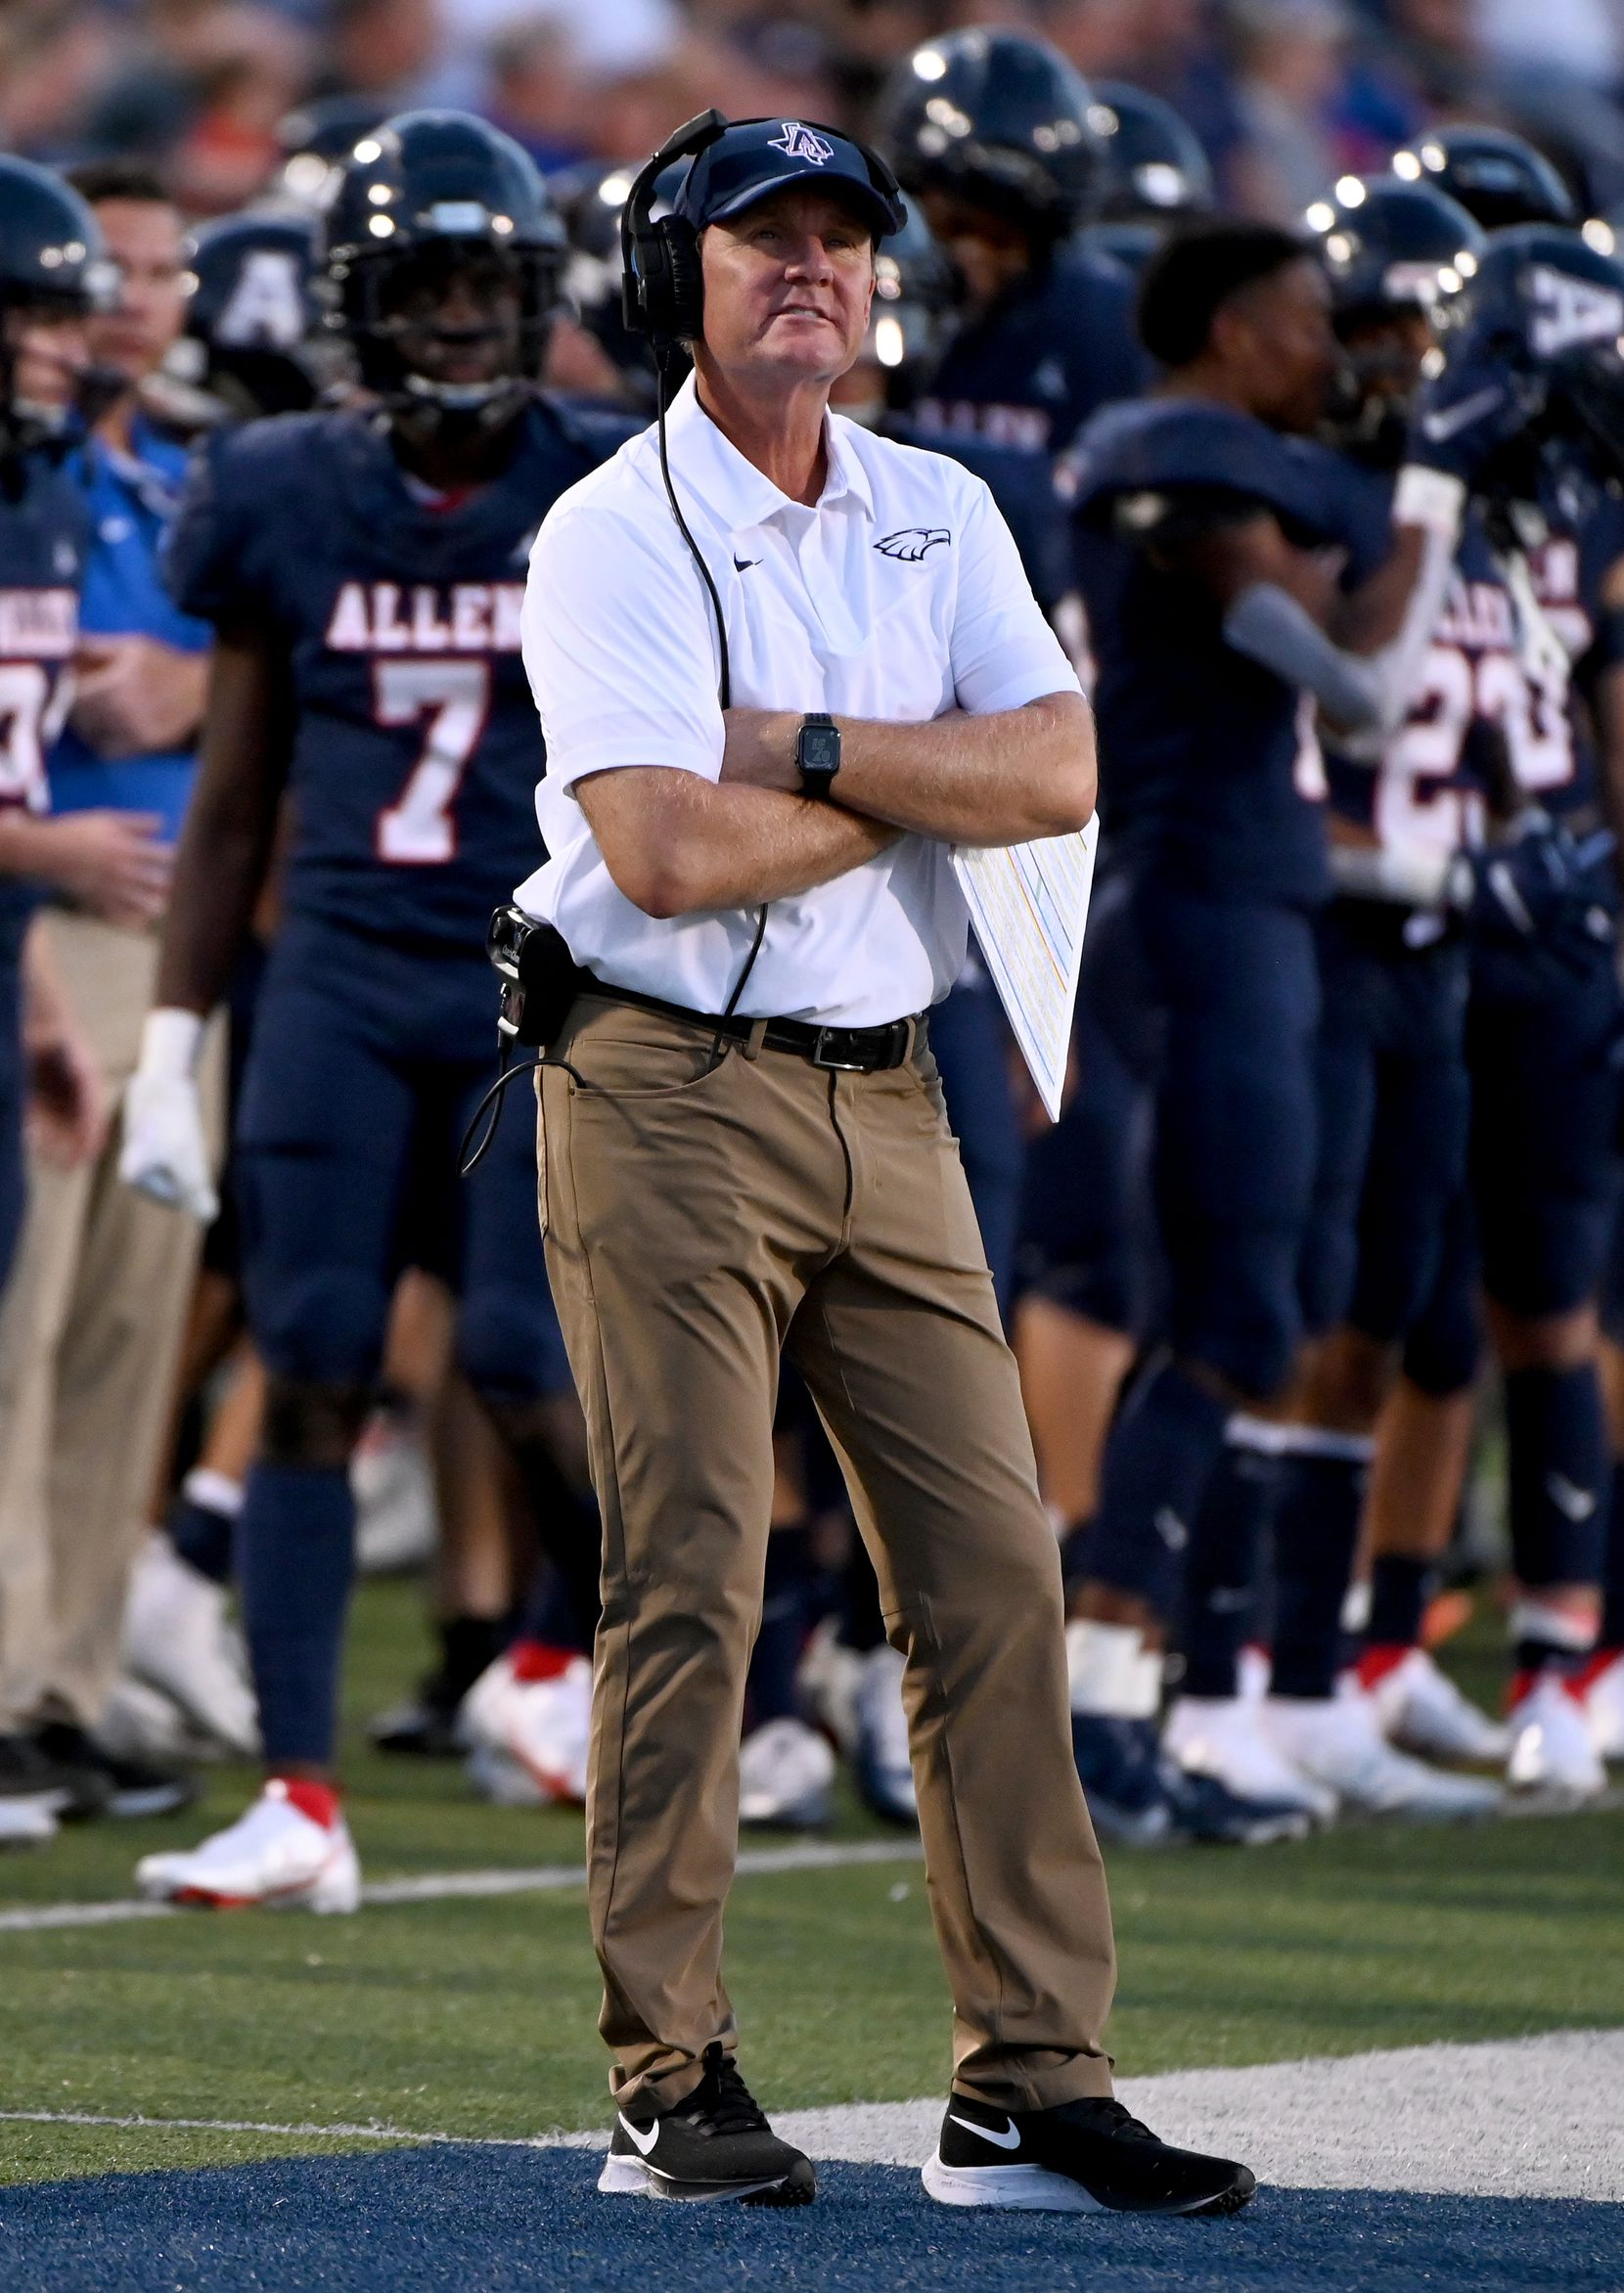 Allen head coach Chad Morris reacts to play in the first half during a high school football game between Plano East and Allen, Friday, Aug. 27, 2021, in Allen, Texas. (Matt Strasen/Special Contributor)